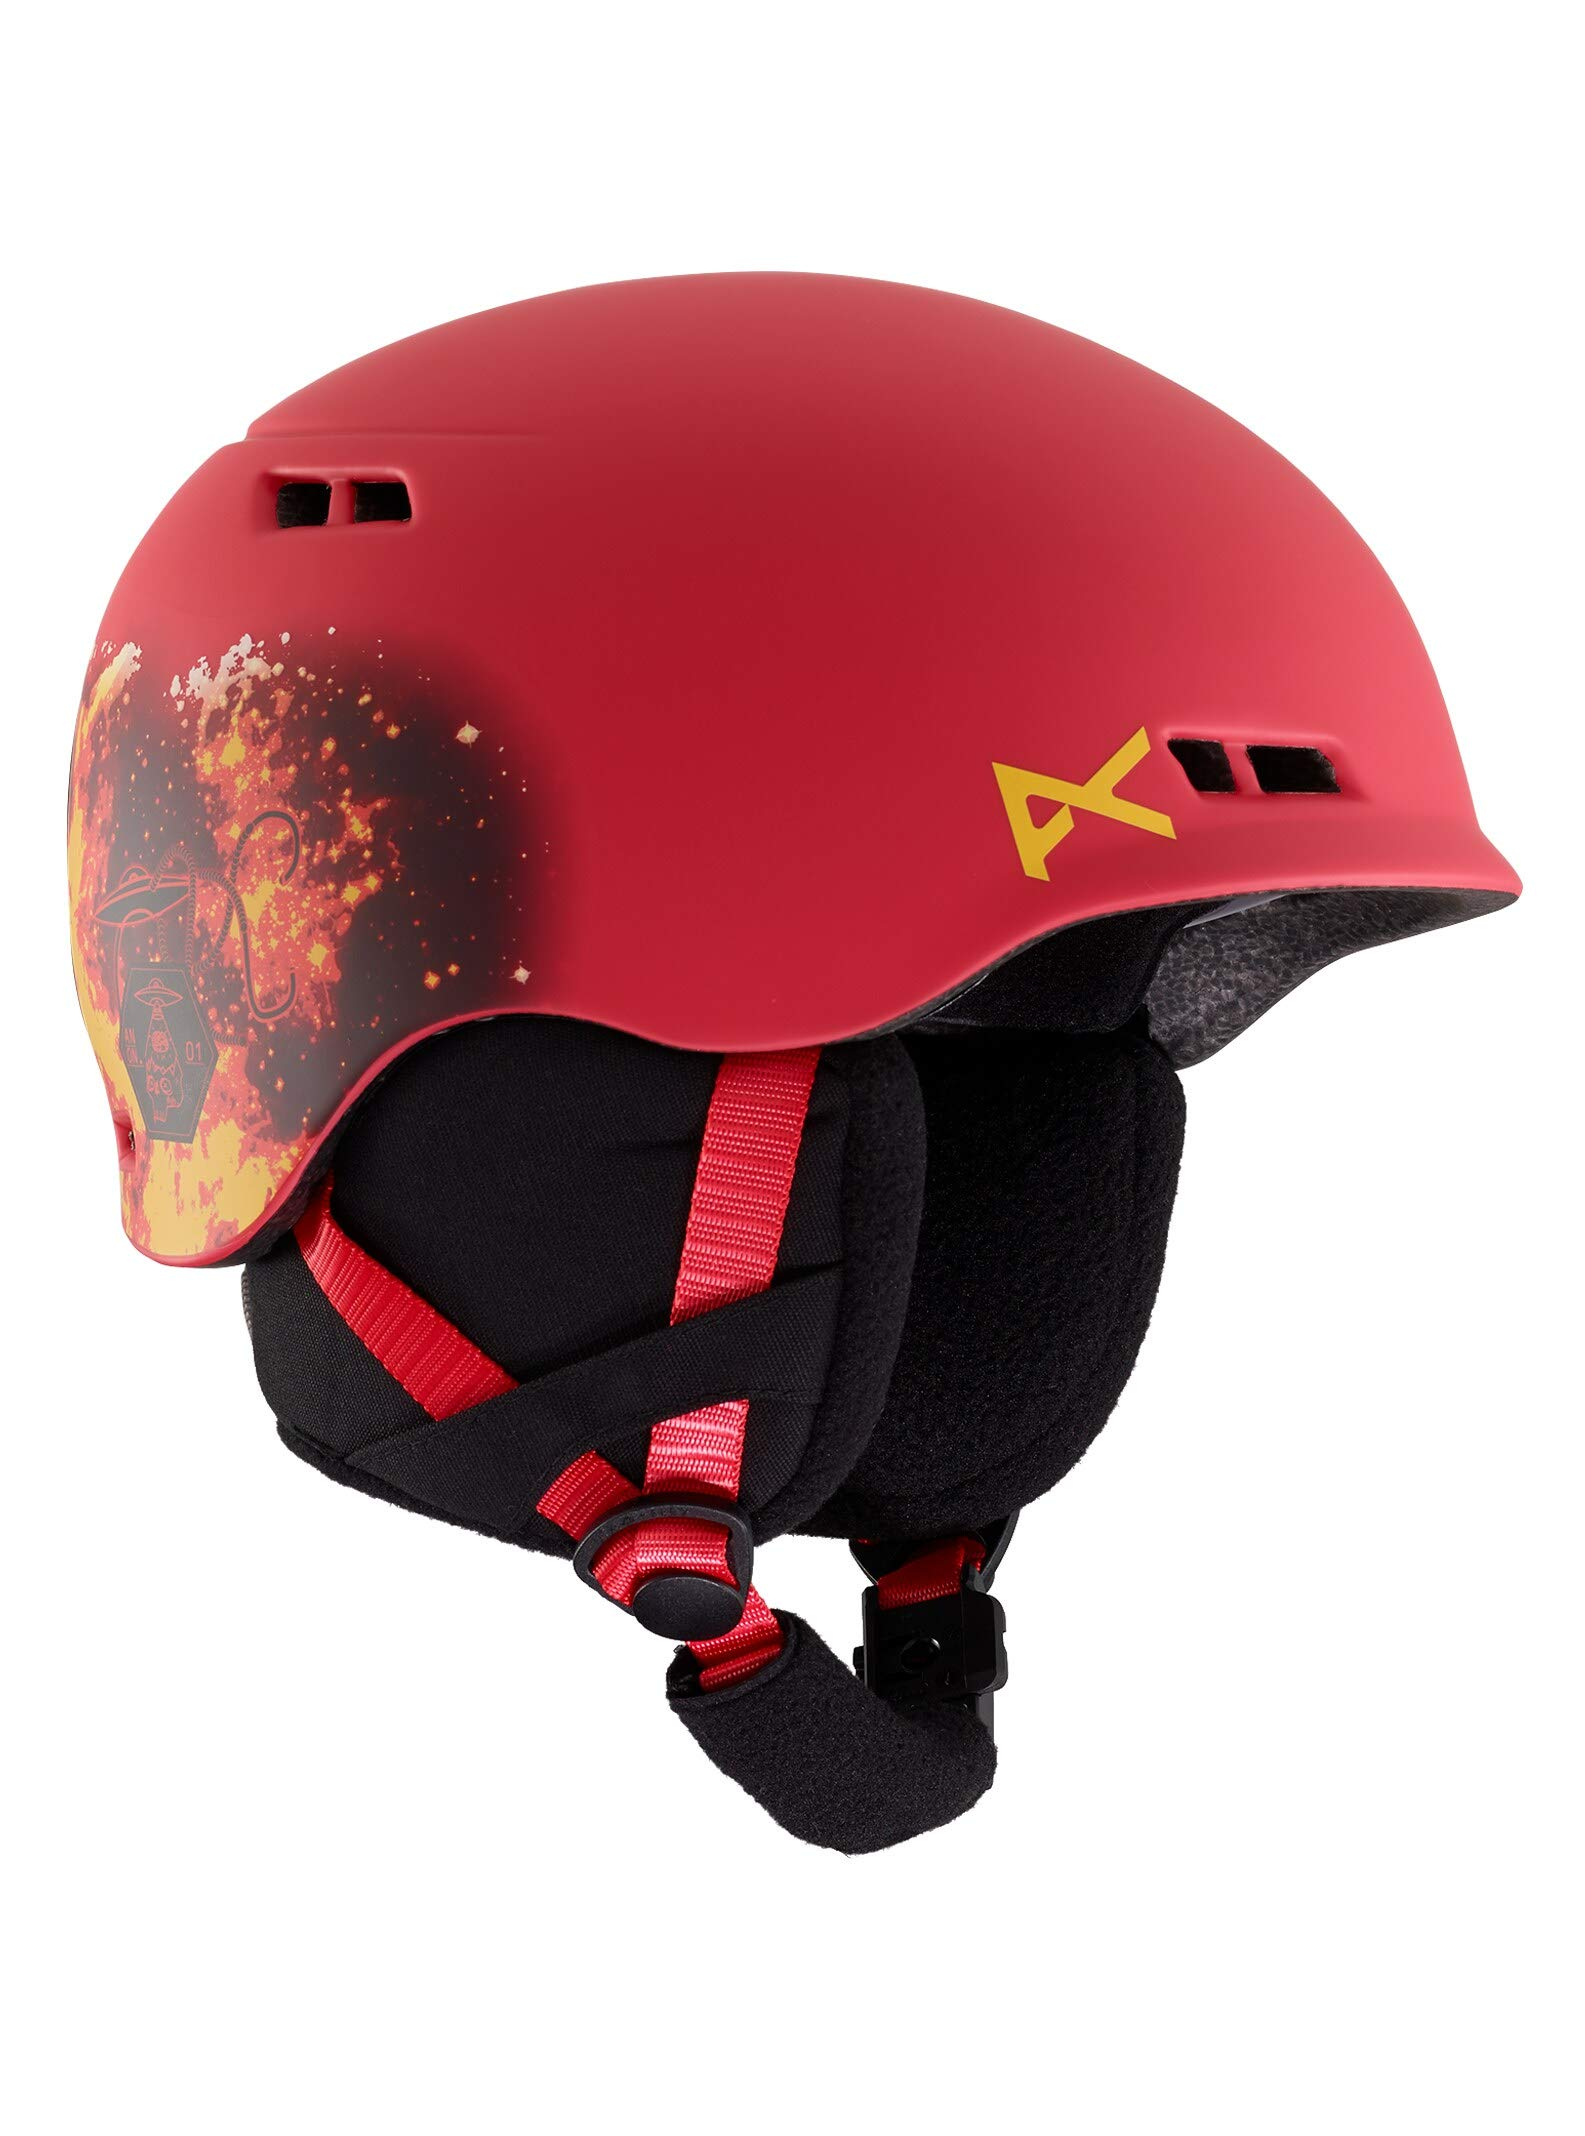 Anon Kids' Lightweight Burner Ski/Snowboard Helmet with BOA Fit System